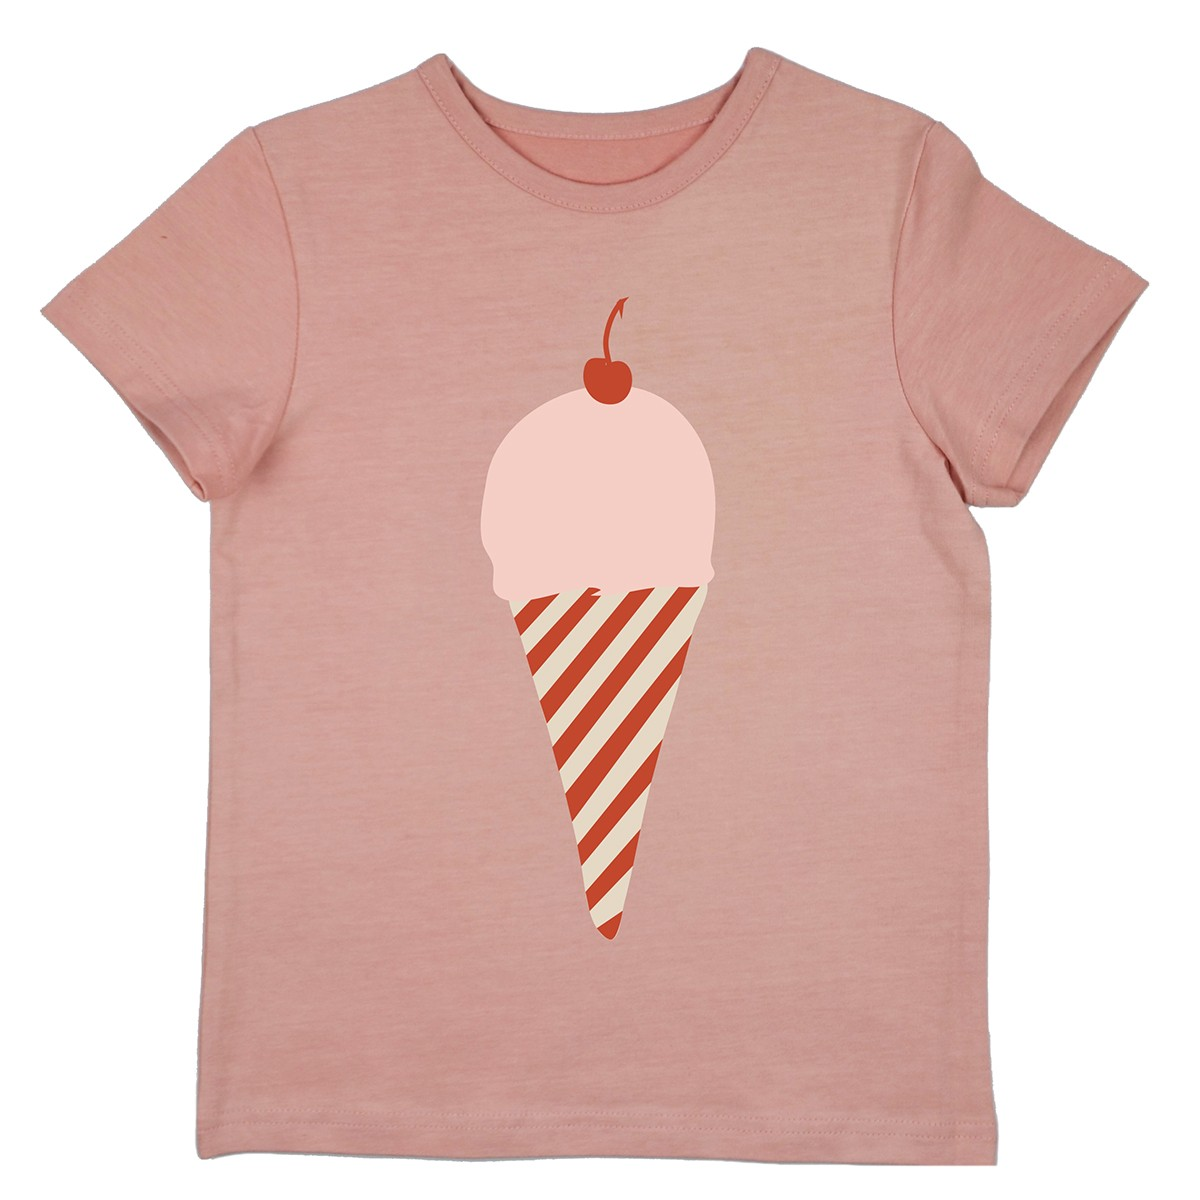 T-shirt icecream R